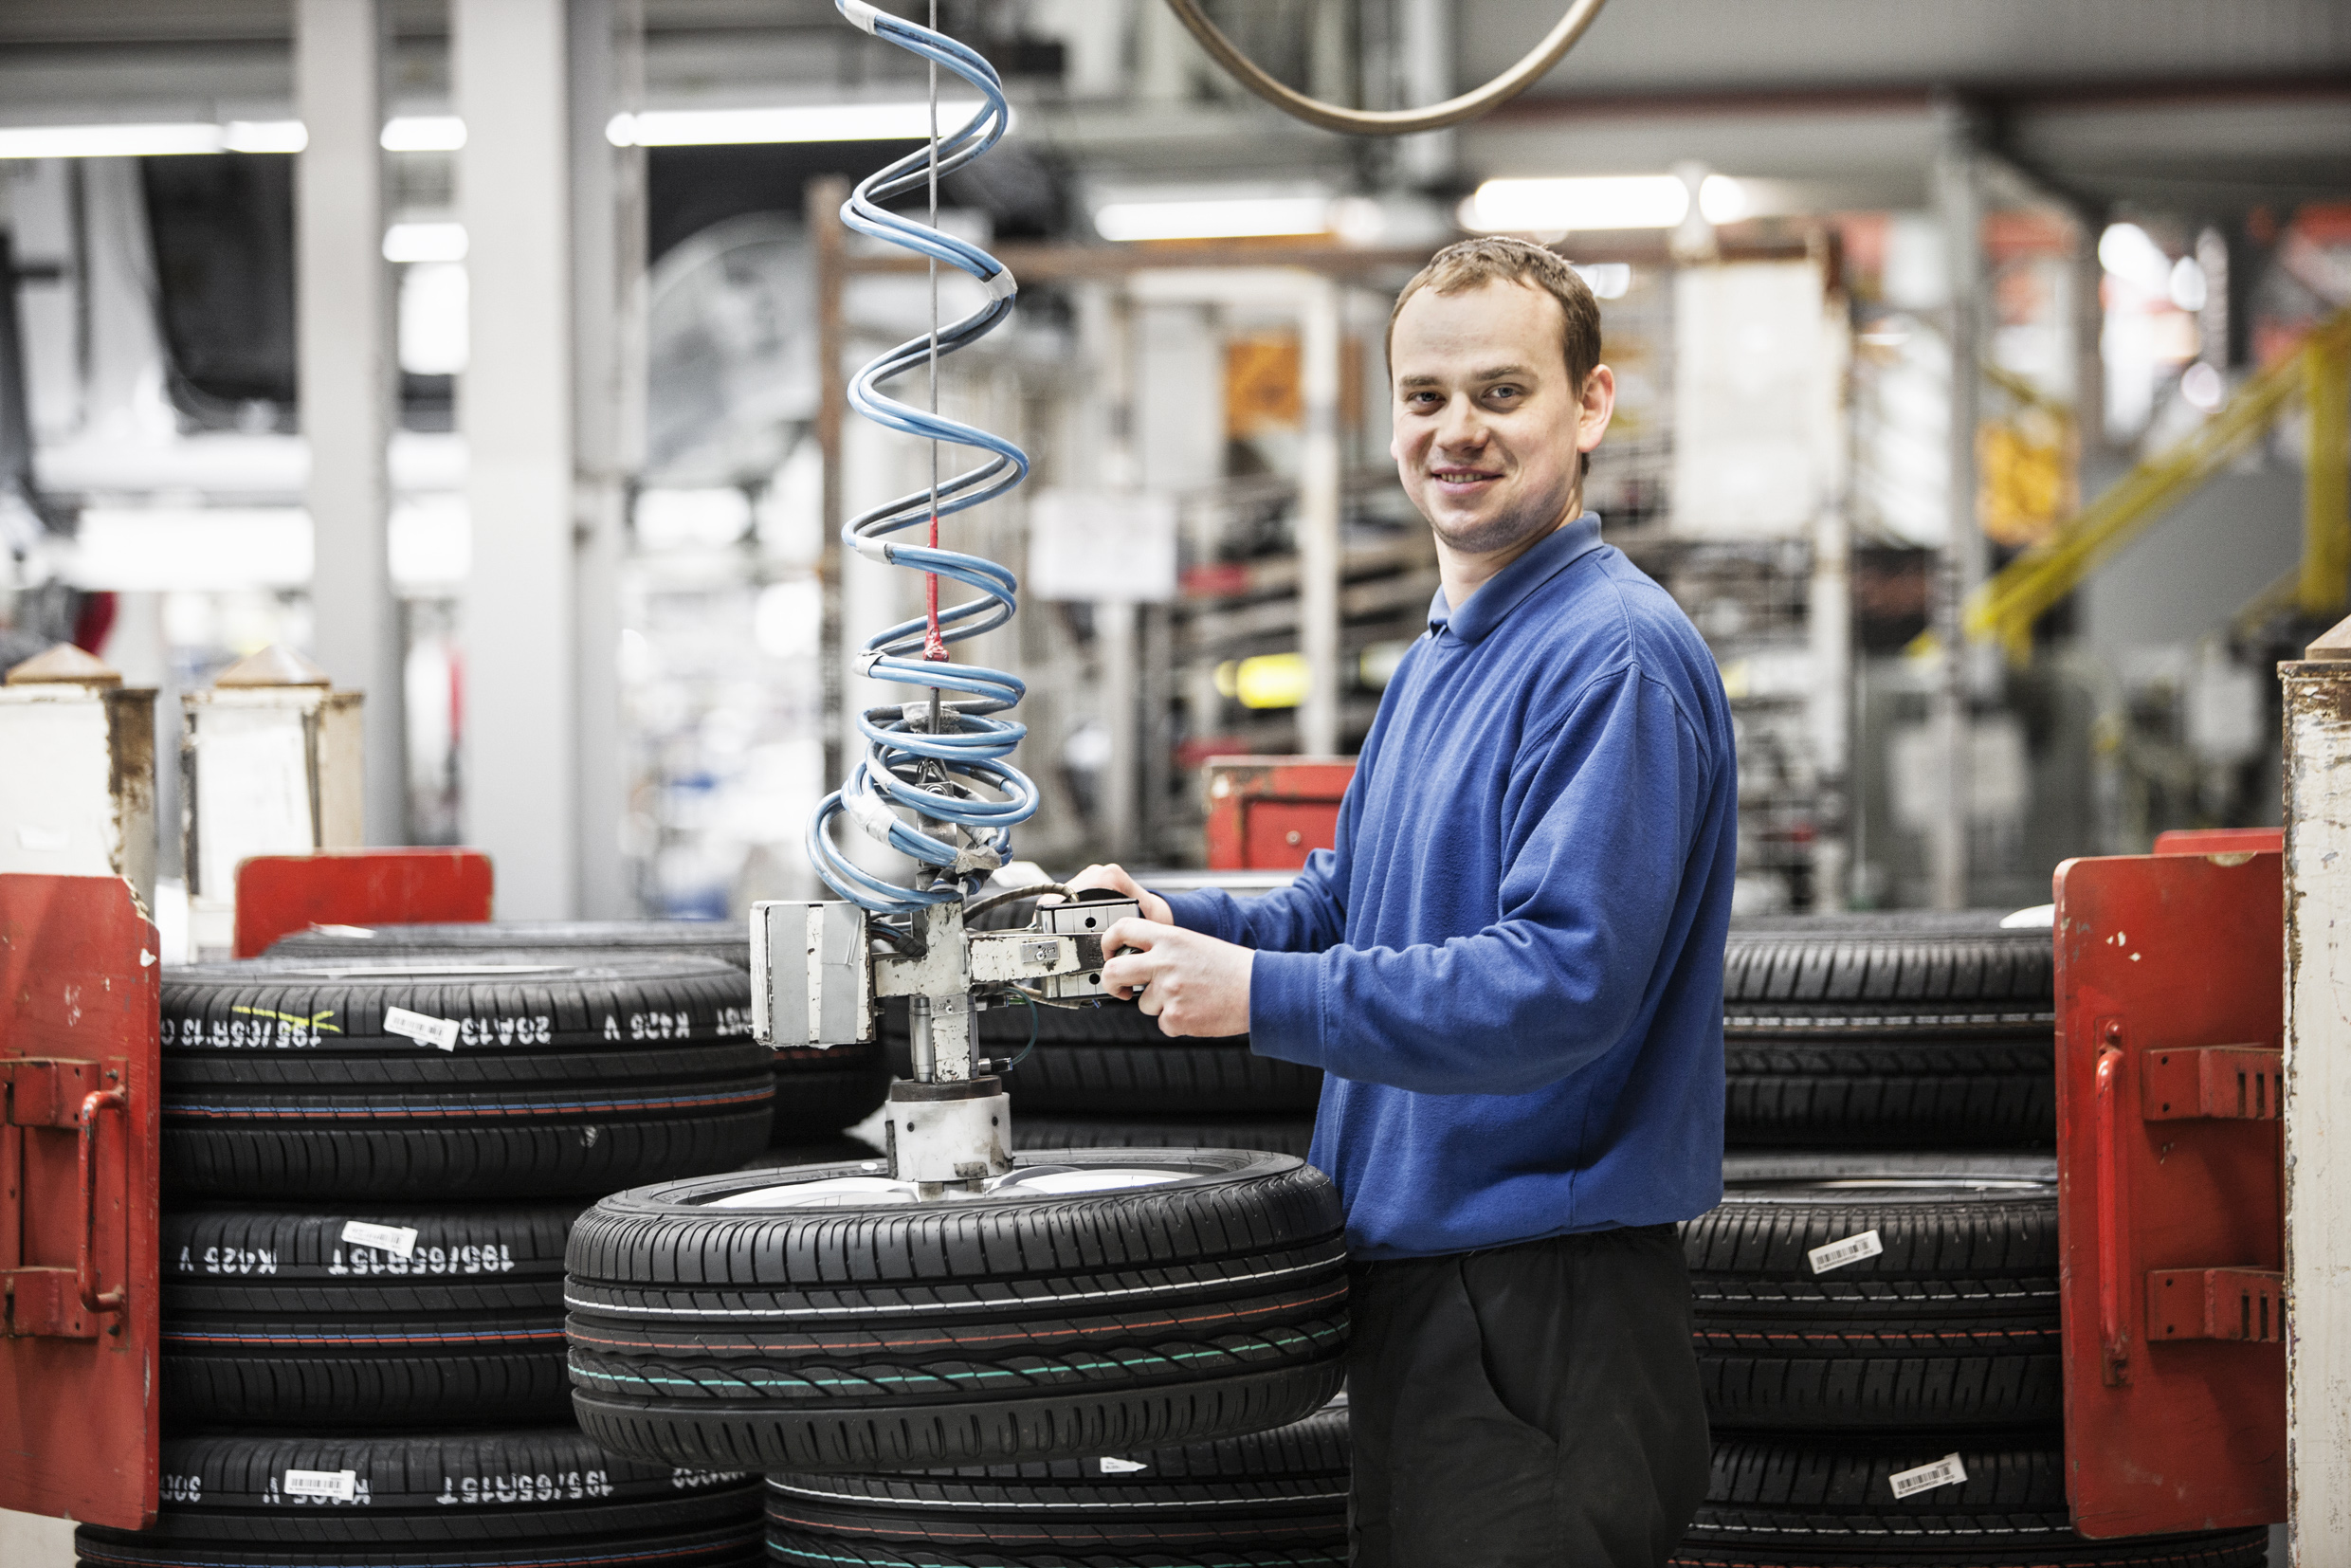 Imperial is a logistics partner for the automobile industry at five business locations in Poland and Hungary. This is one of the Imperial employees working in the pre-assembly of automotive components. A new contract with Audi in Hungary - and the renewal of contracts with Volkswagen in Poland - have been secured by Imperial Logistics.